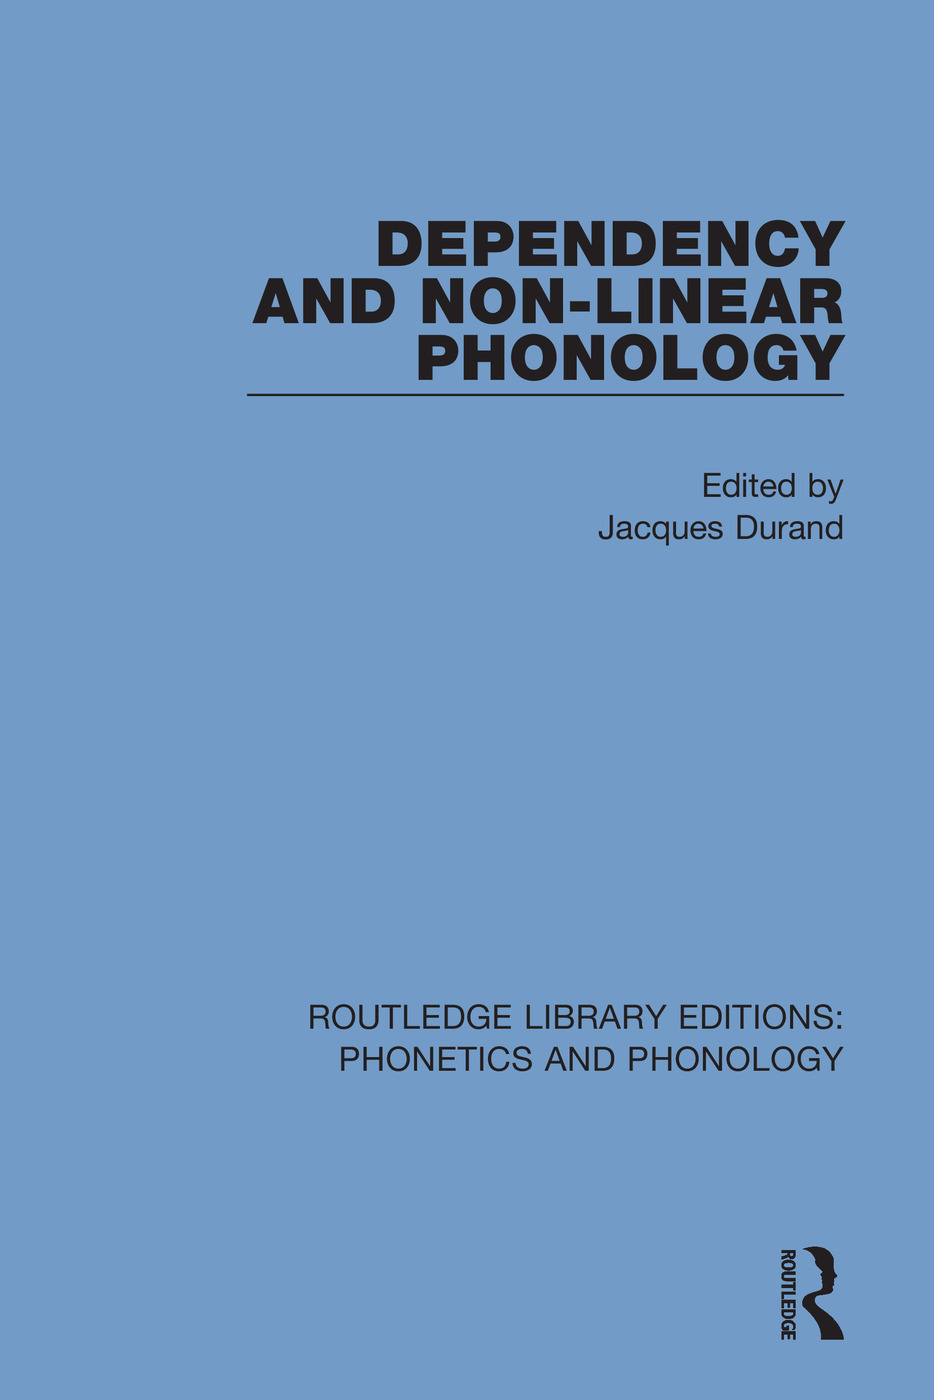 Dependency and Non-Linear Phonology